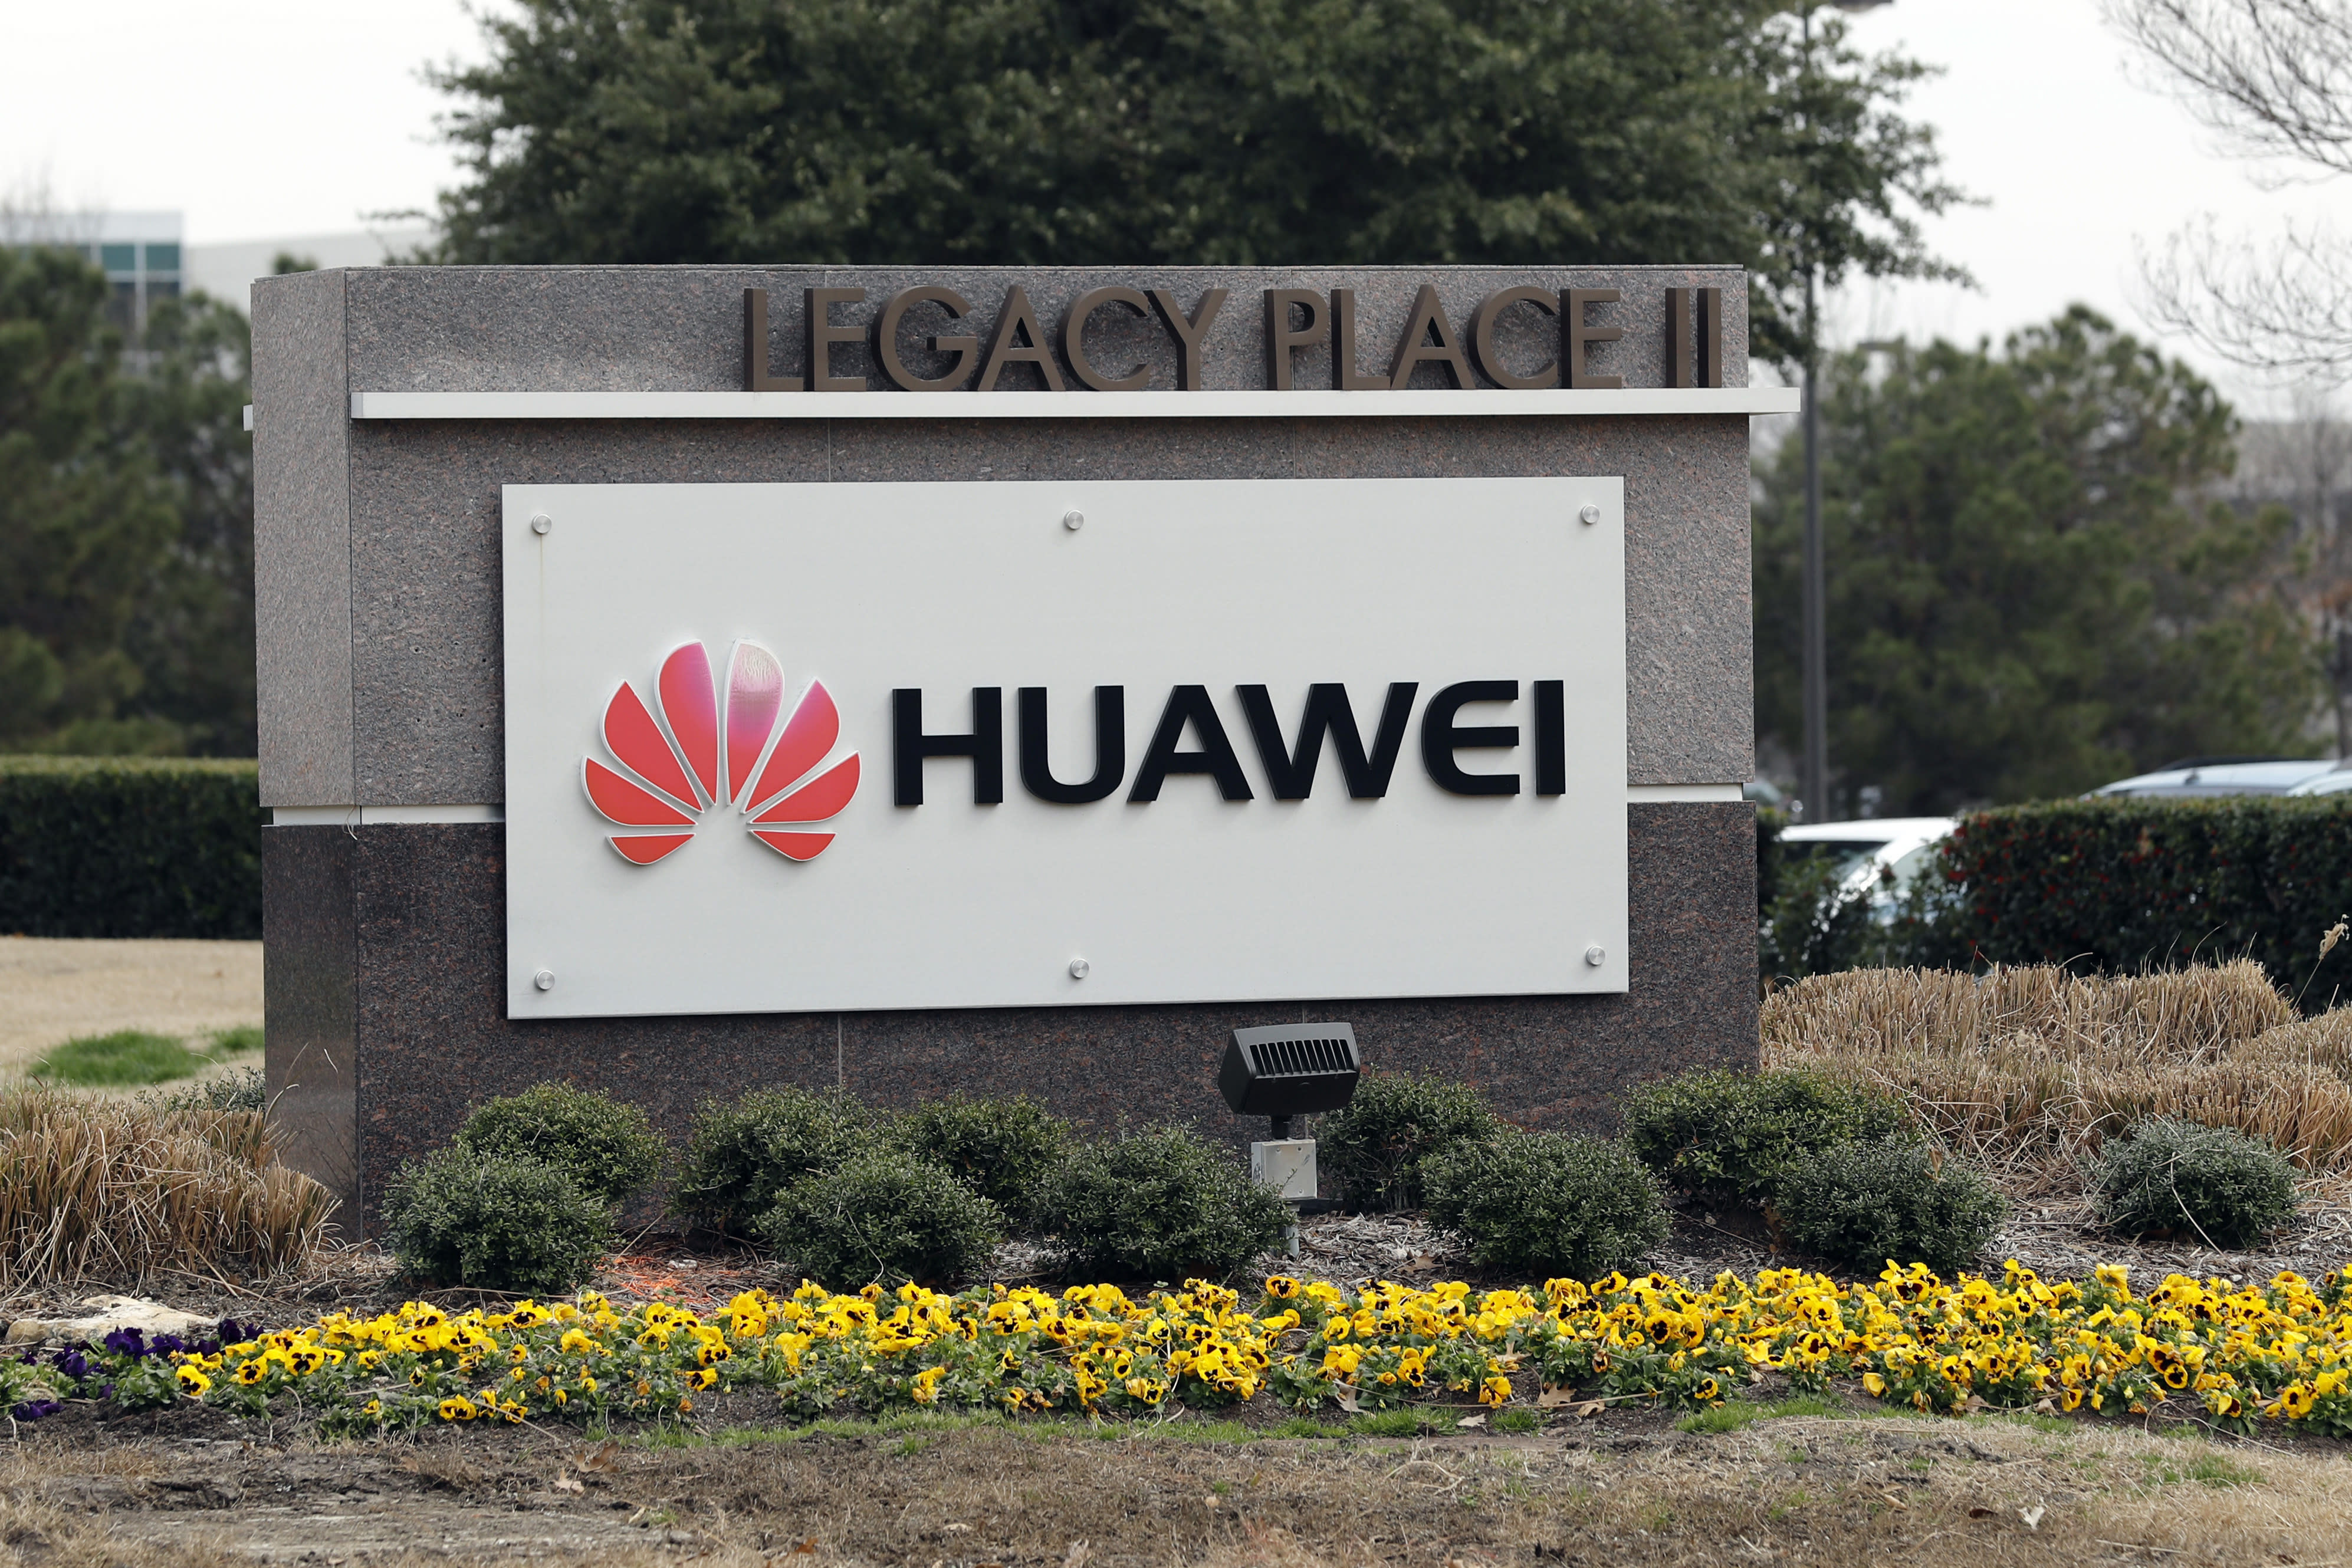 """FILE - In this March 7, 2019, file photo, a sign is displayed outside the Huawei Technologies Ltd. business location in Plano, Texas. China on Wednesday, July 1, 2020 demanded Washington stop """"oppressing Chinese companies"""" after U.S. regulators declared telecom equipment suppliers Huawei and ZTE to be national security threats. (AP Photo/Tony Gutierrez, File)"""